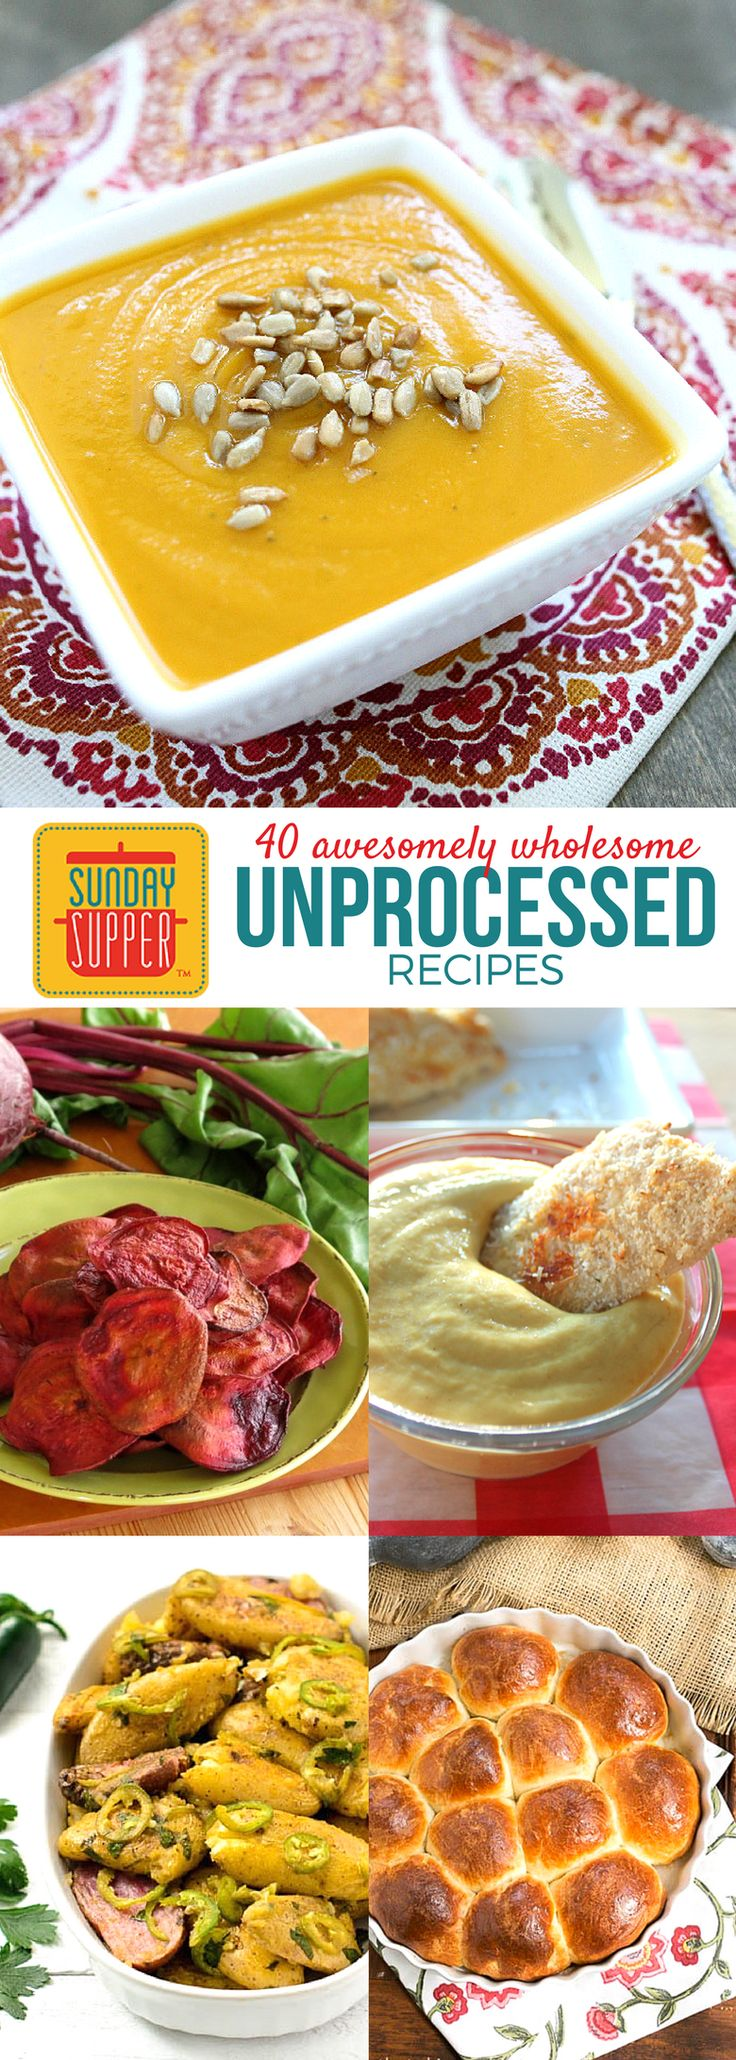 Are you ready to ramp up the amount of unprocessed foods you eat? Join us around the family table as we share unprocessed recipes for #SundaySupper